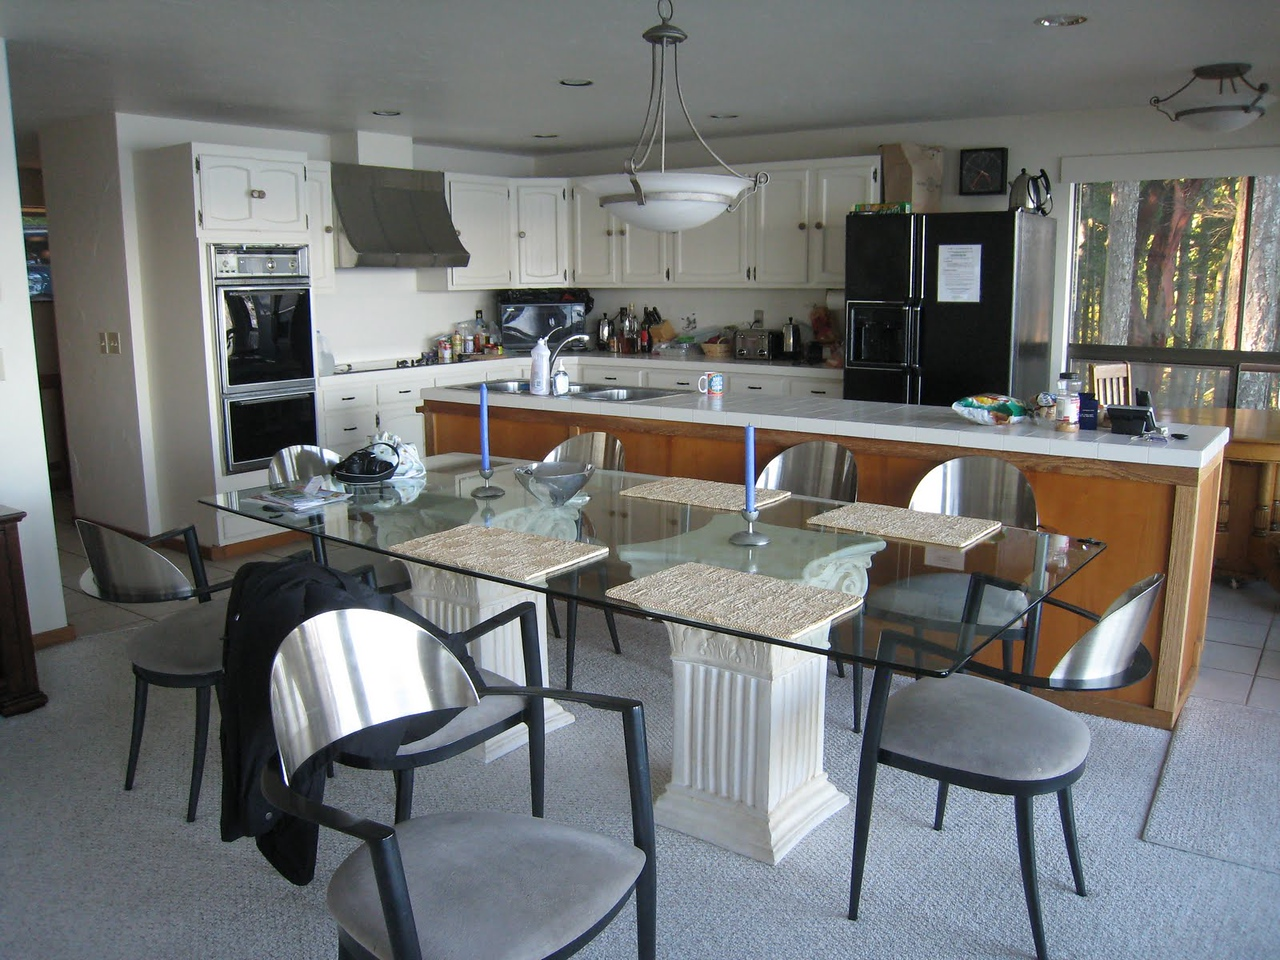 Robinson Cove house on San Juan Island - great kitchen and dining area.